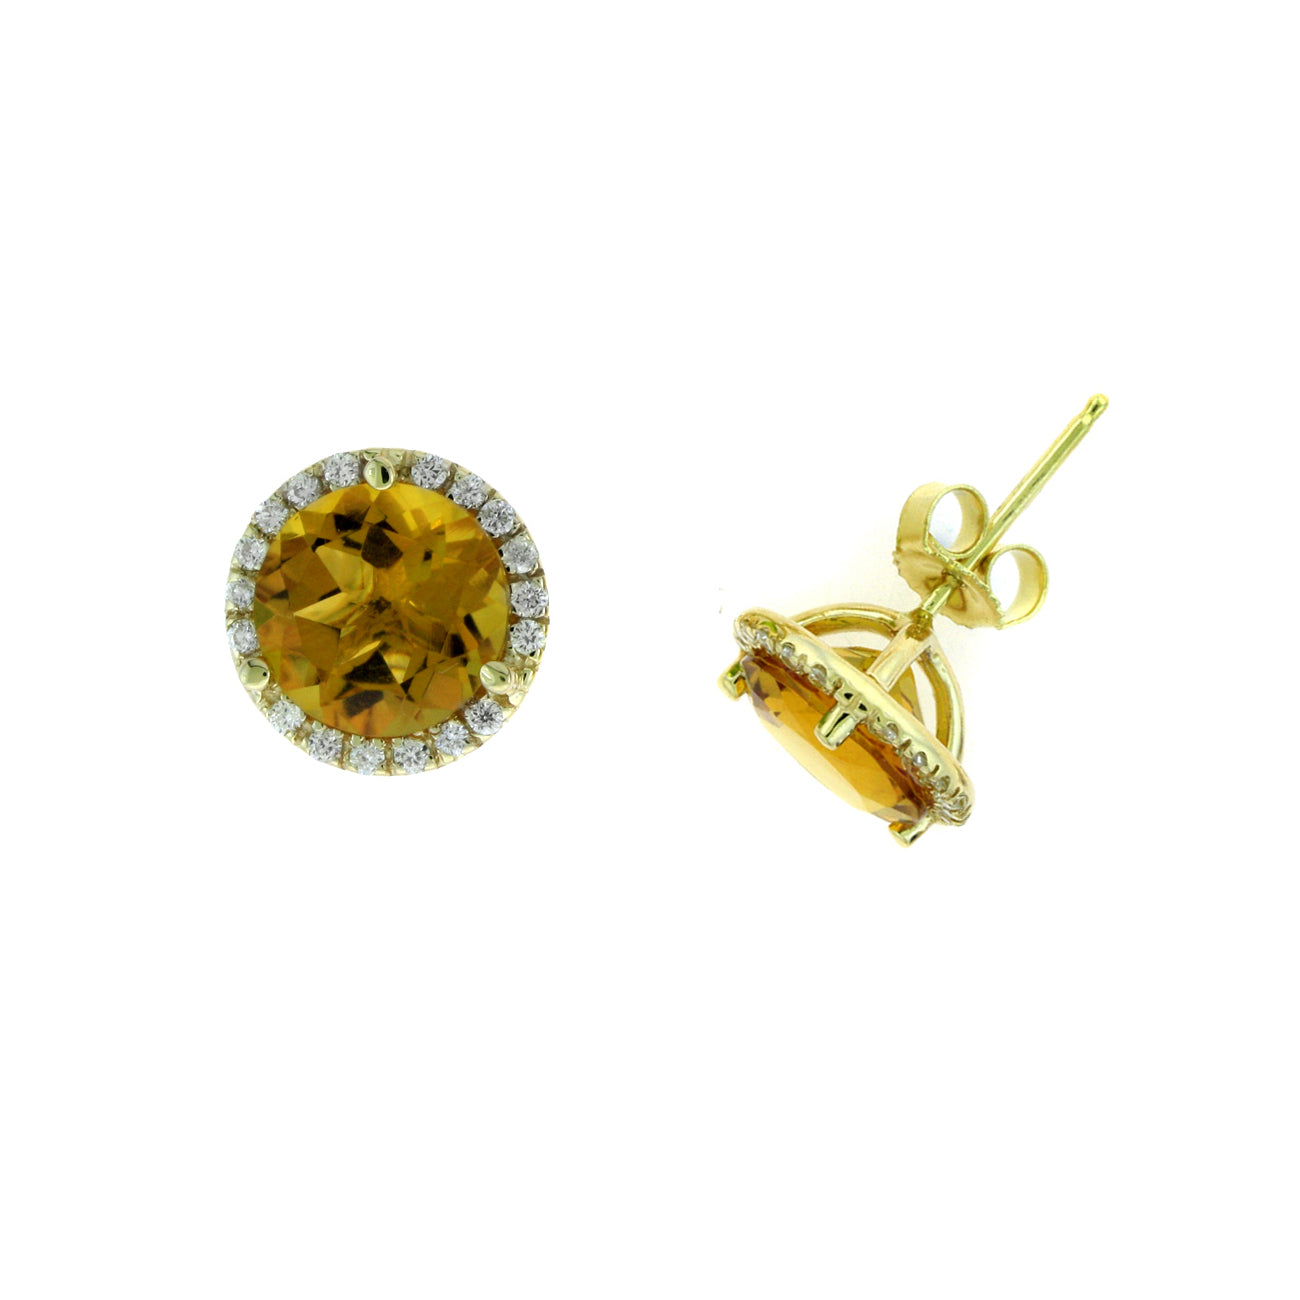 Round Citrine And Diamond Halo Earrings, 14K Yellow Gold